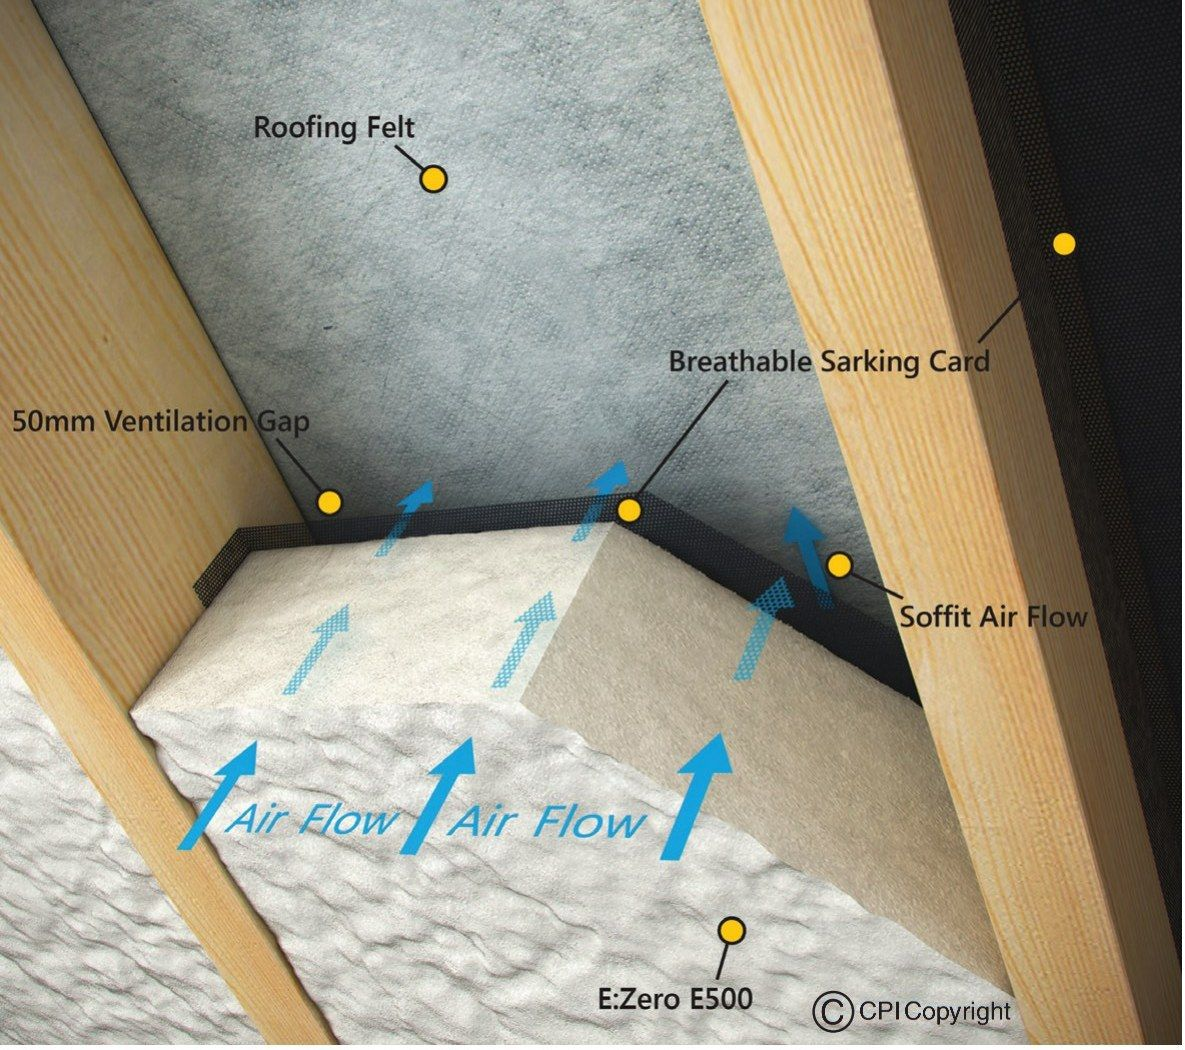 Operator Insulating Attic With Spray Foam Remodel Ideas